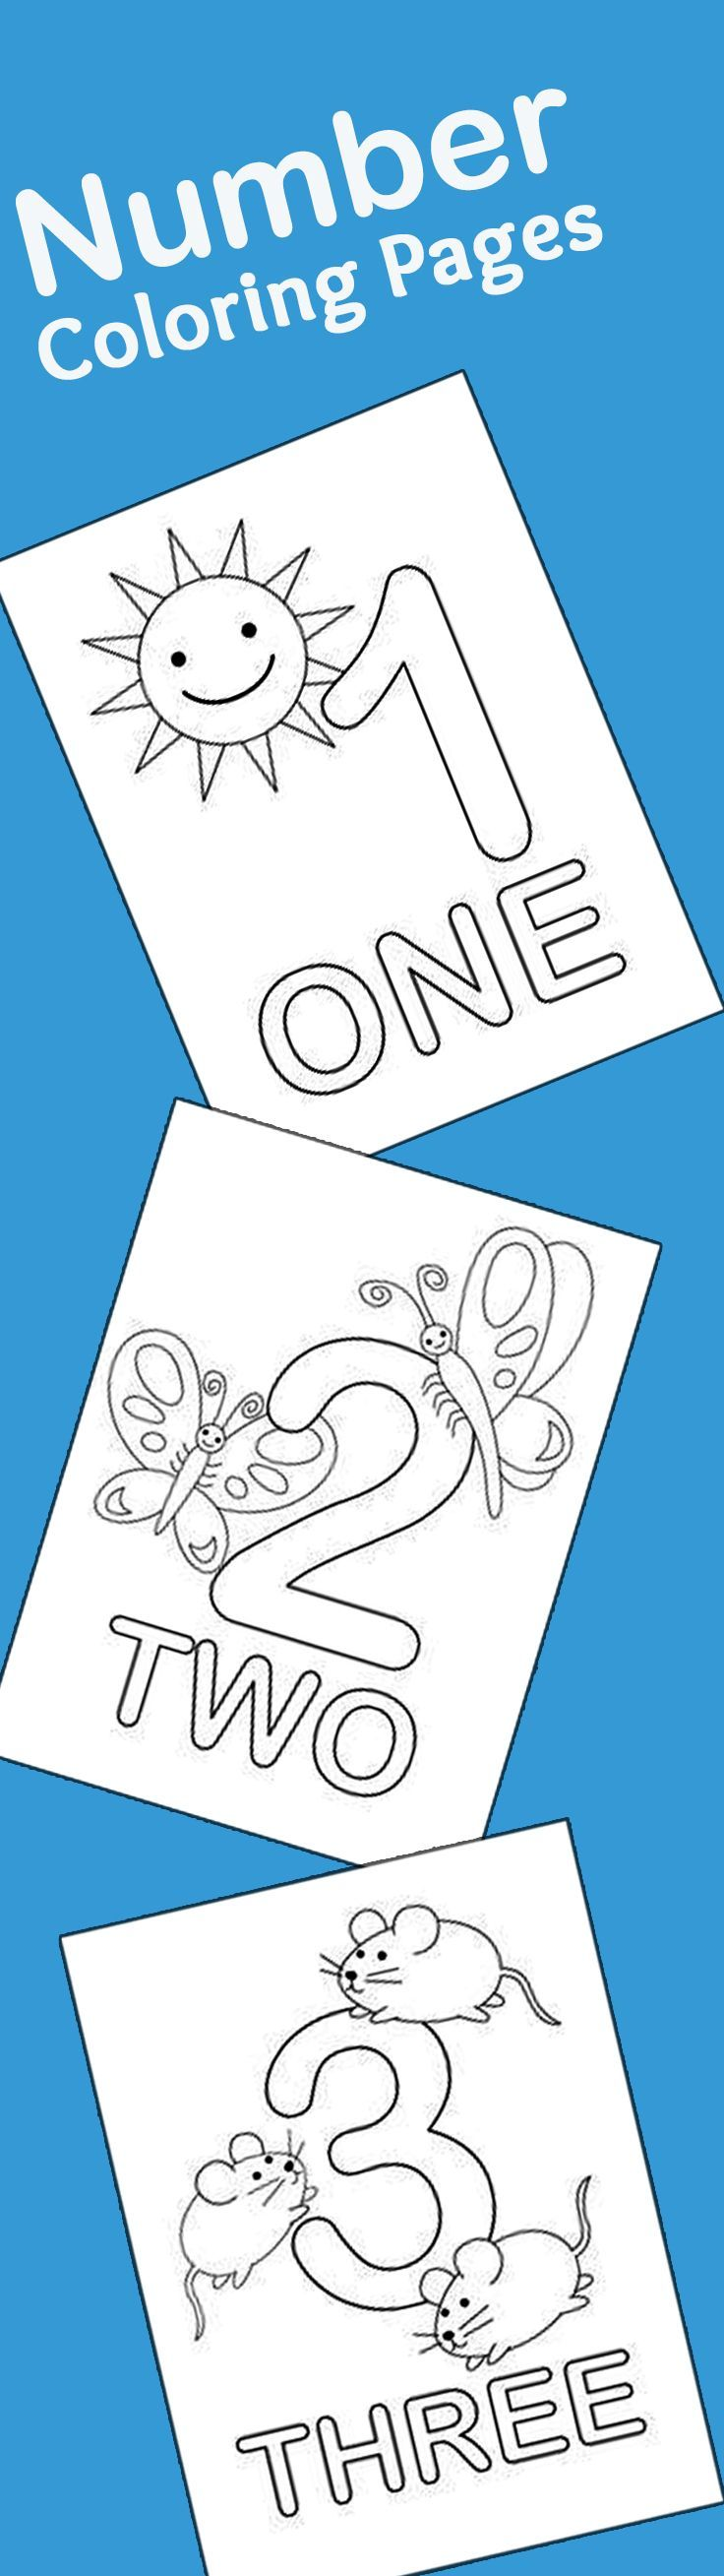 10 Easy To Learn Number Coloring Pages For Your Little Ones: This is a list of the top 10 number coloring sheets that you can use to introduce numbering as well as coloring to your kid.: